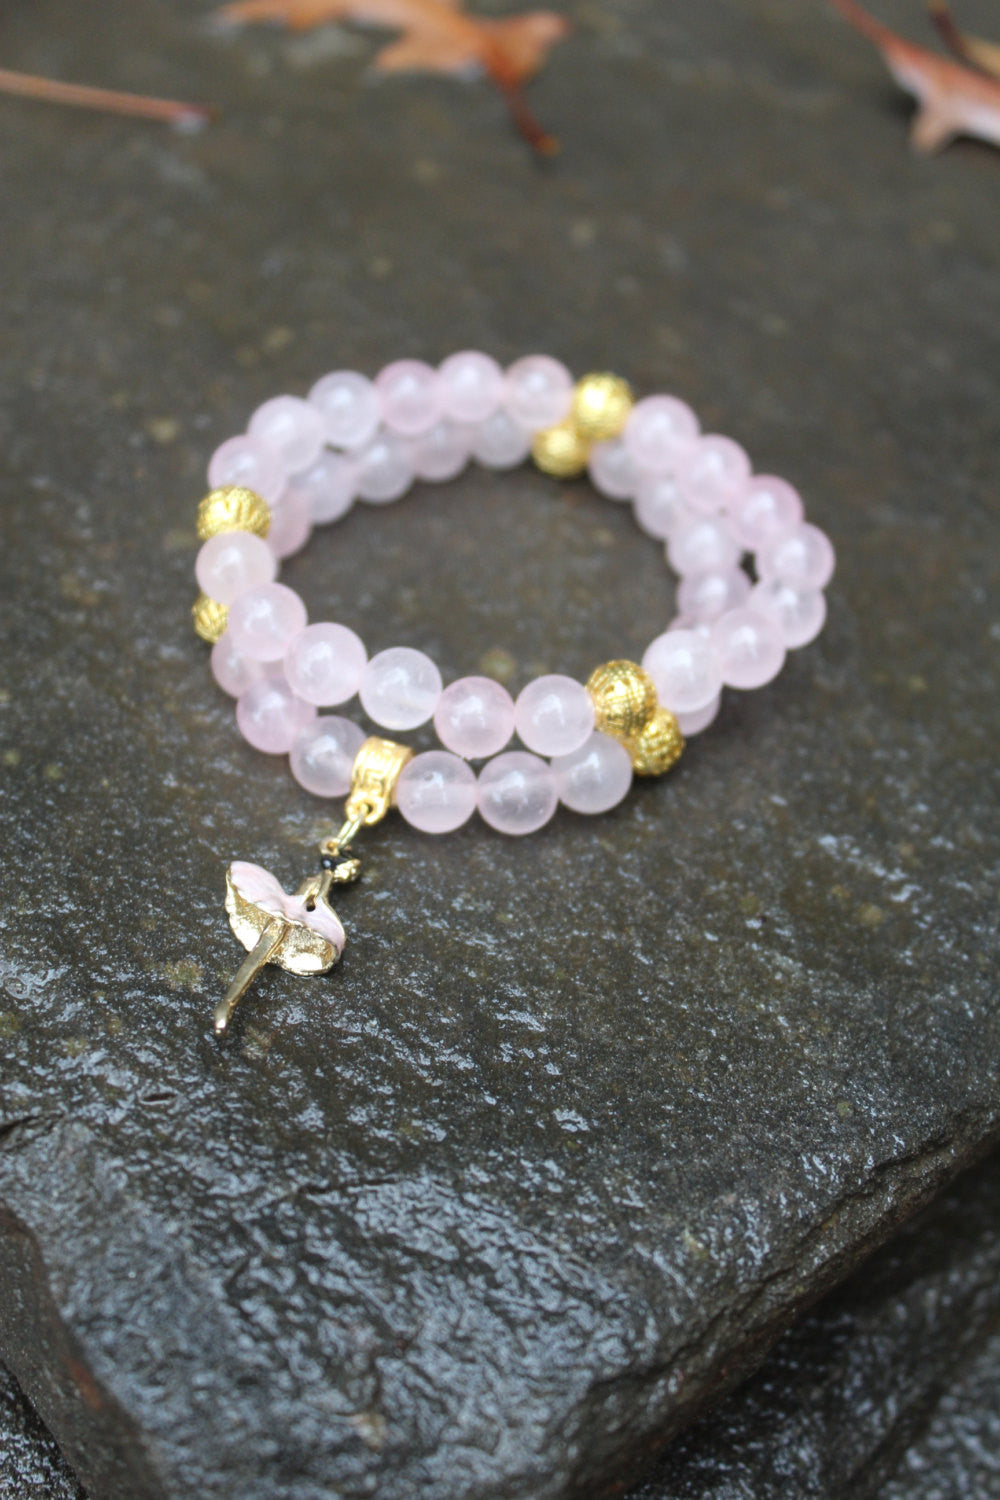 Genuine Rose Quartz Ballerina Bracelet with Gold Accents